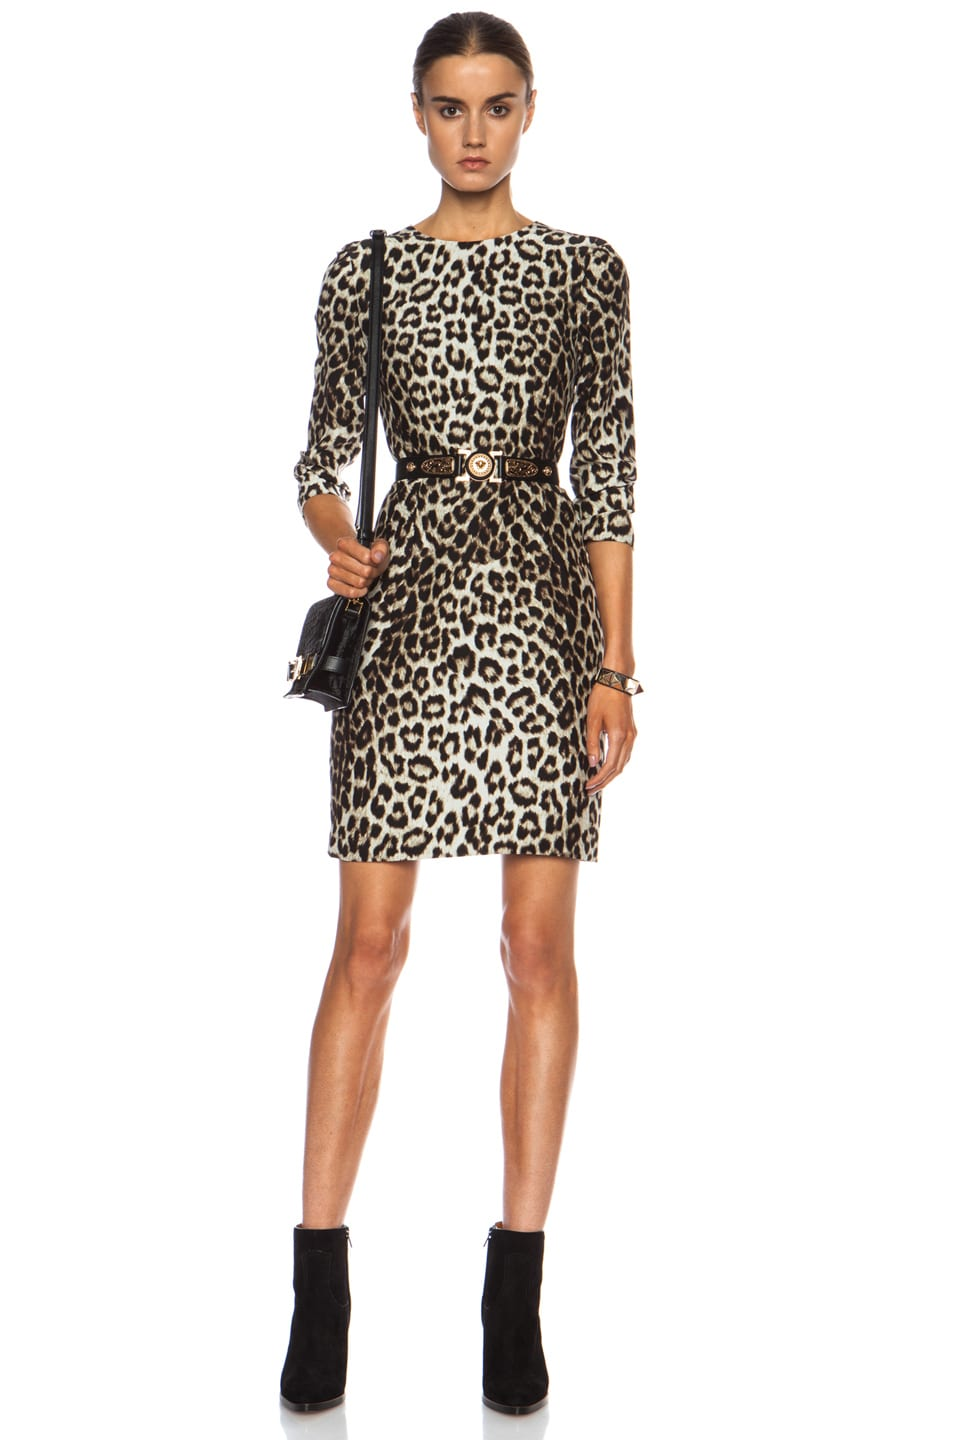 ac3e055c8e42 Image 1 of Rag & Bone Short Silk Dress in Leopard